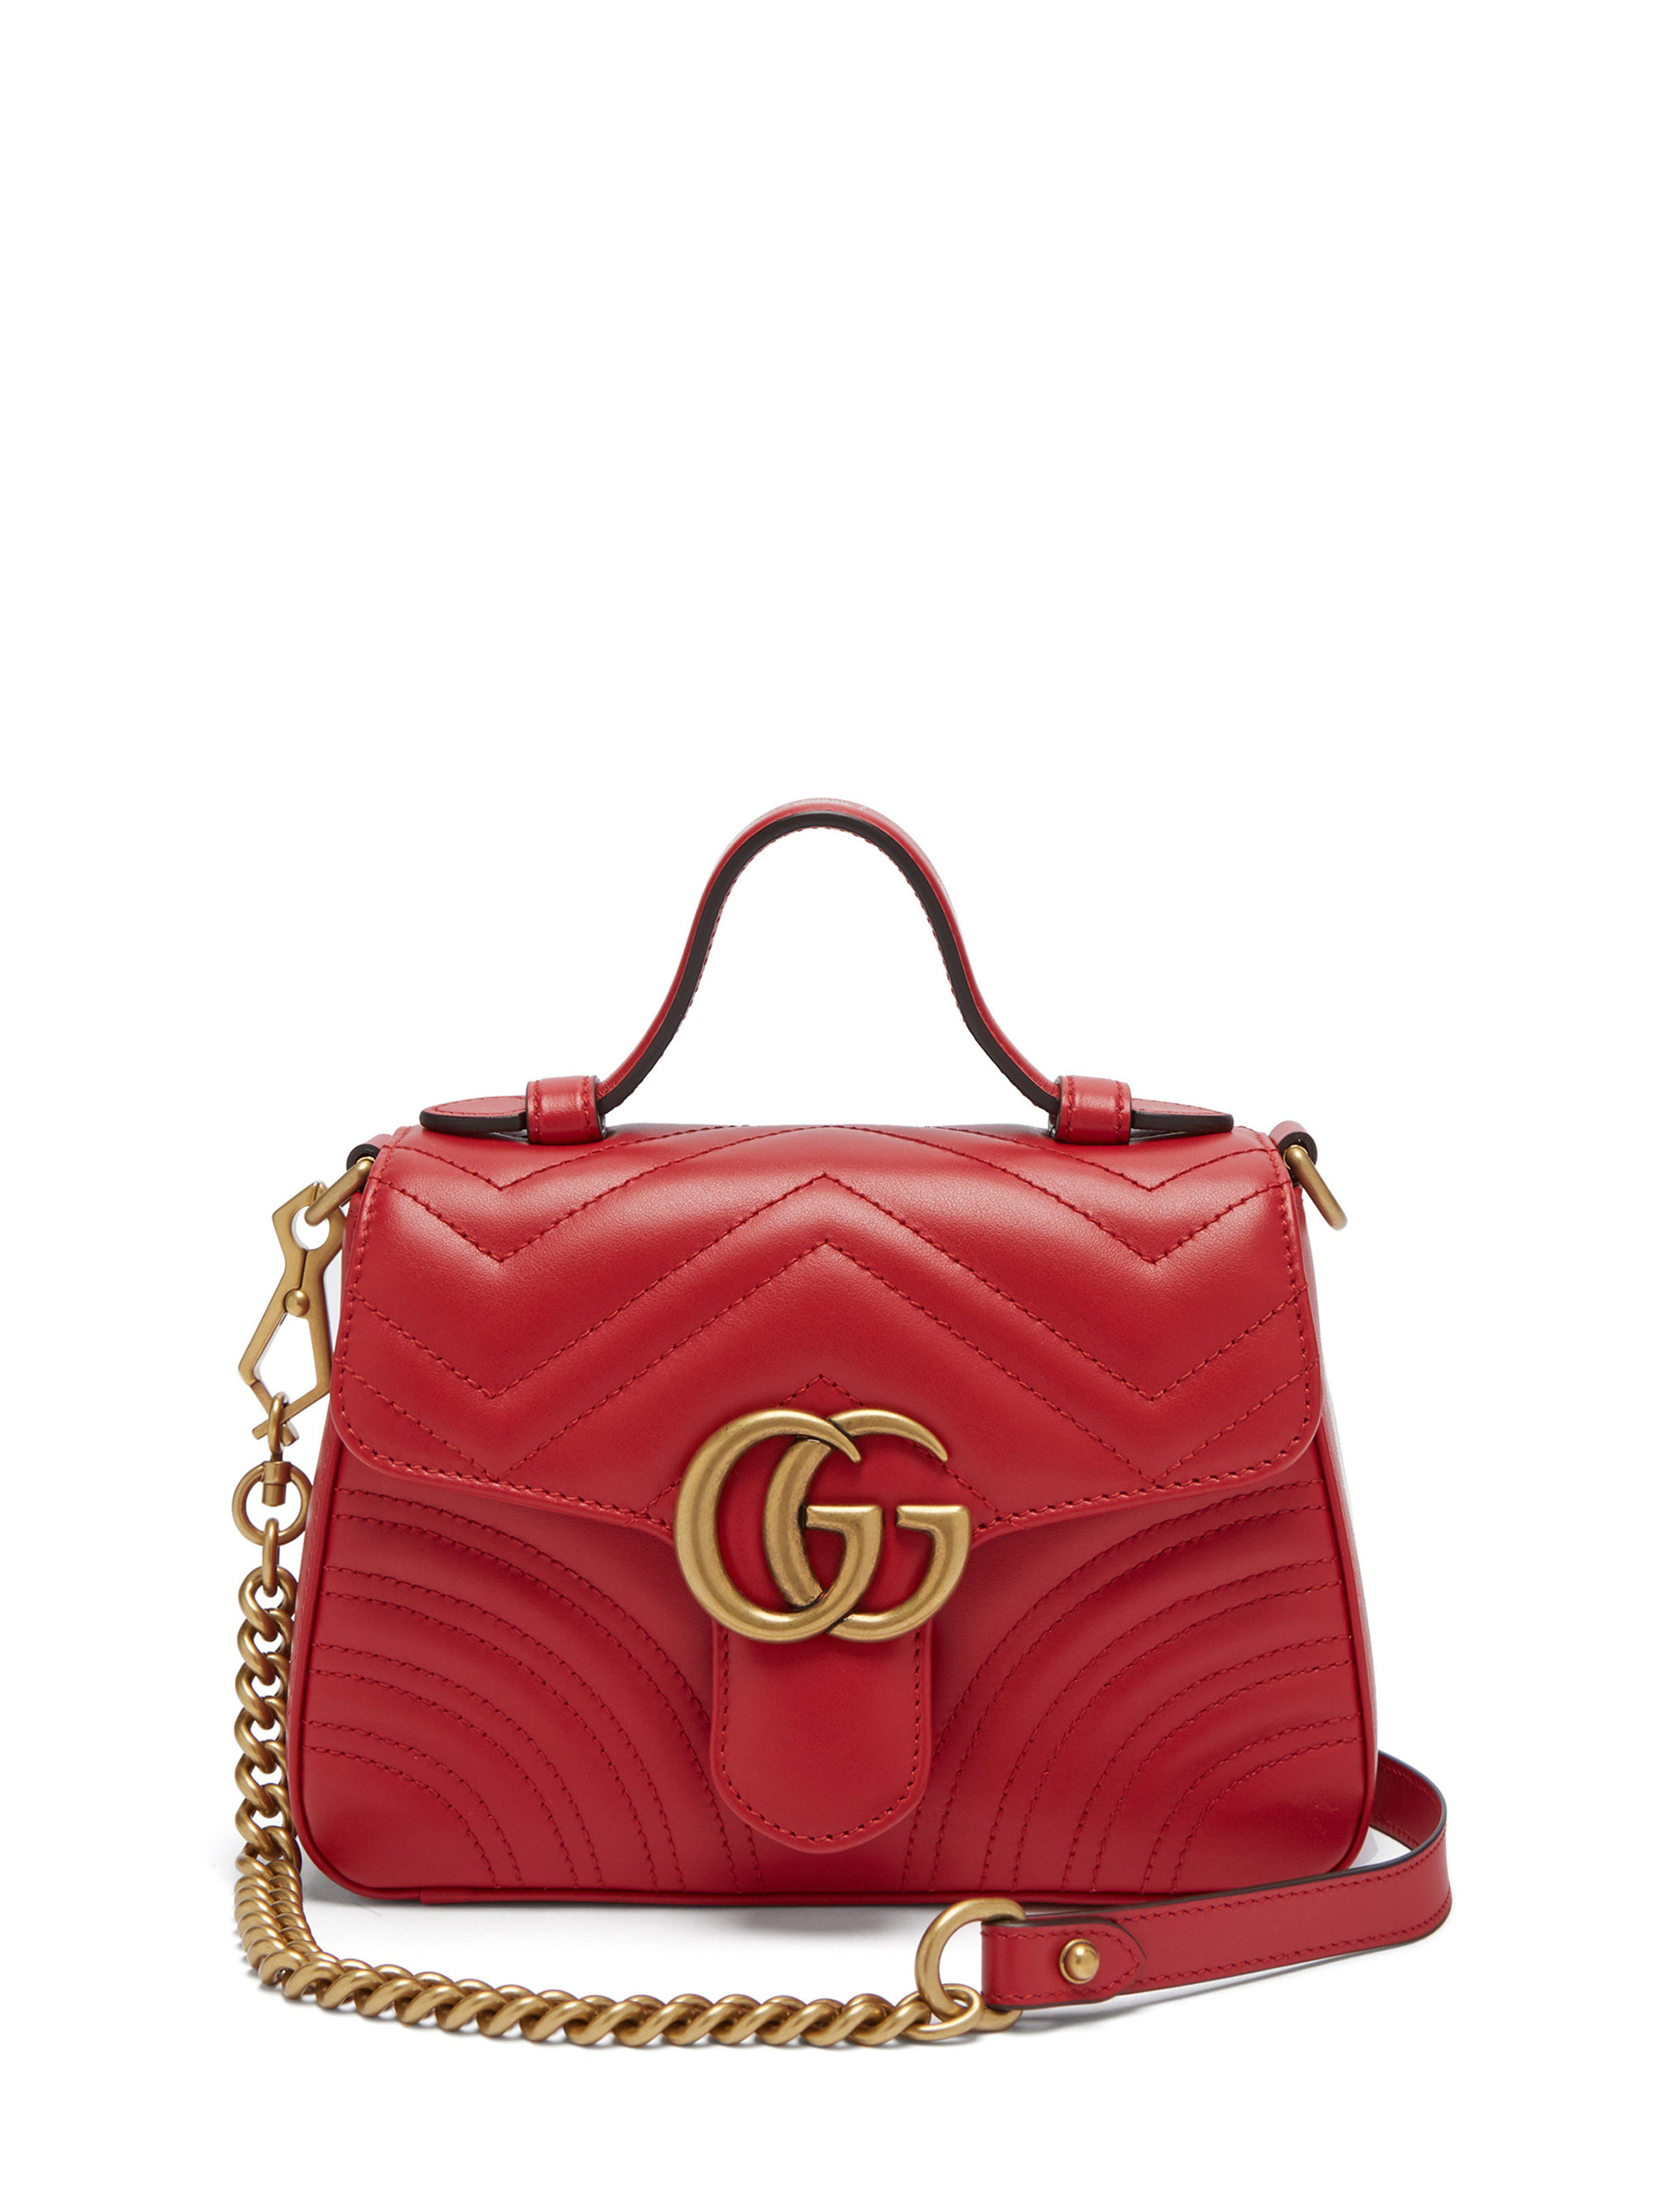 29c701dc8cf Gucci Gg Marmont Quilted Leather Cross Body Bag in Red - Save 15% - Lyst